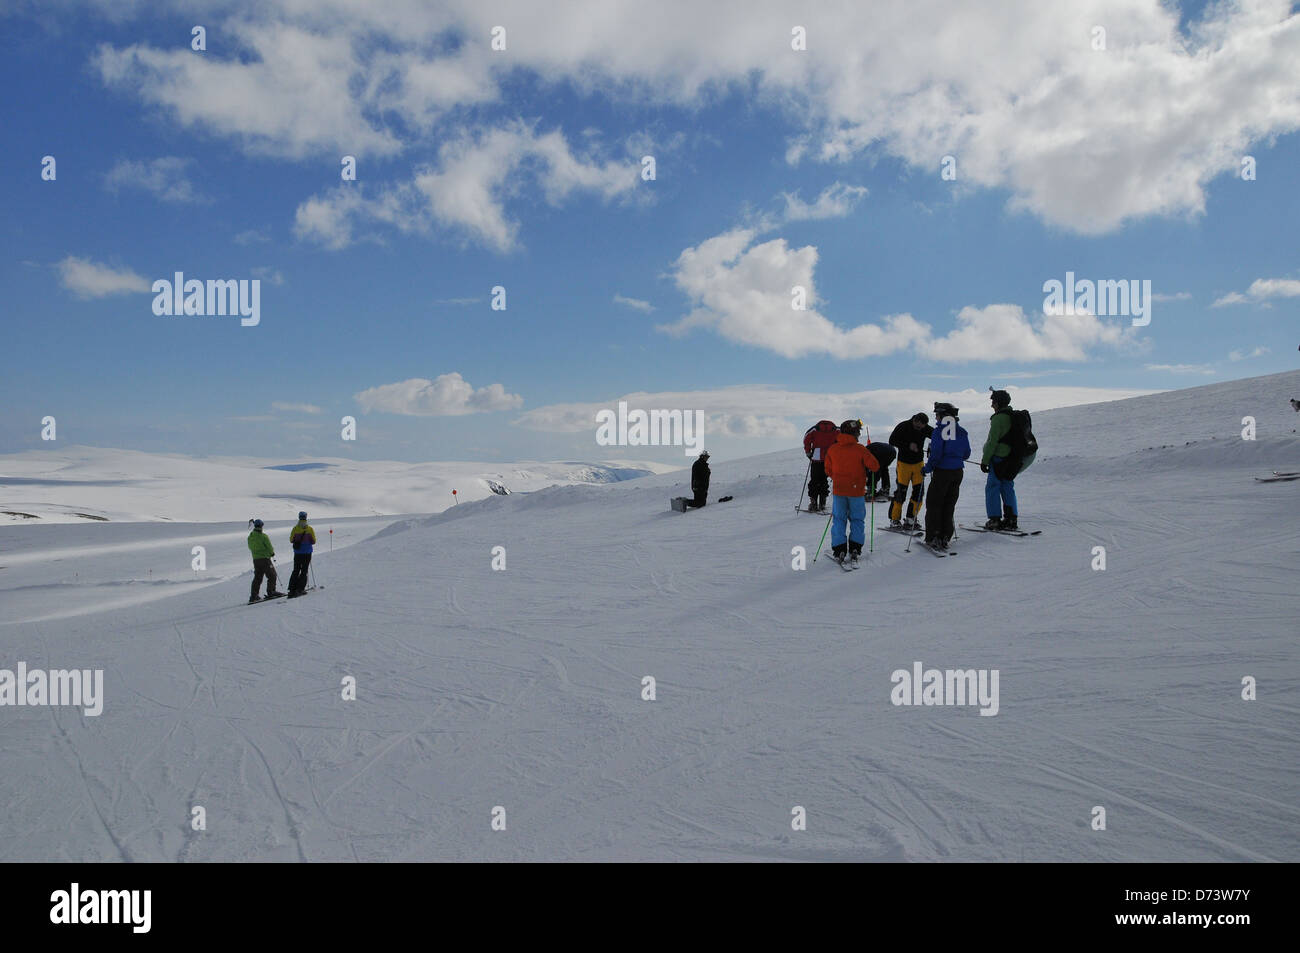 A group of Skiiers at the top of the Glass Maol Run at Glenshee. - Stock Image